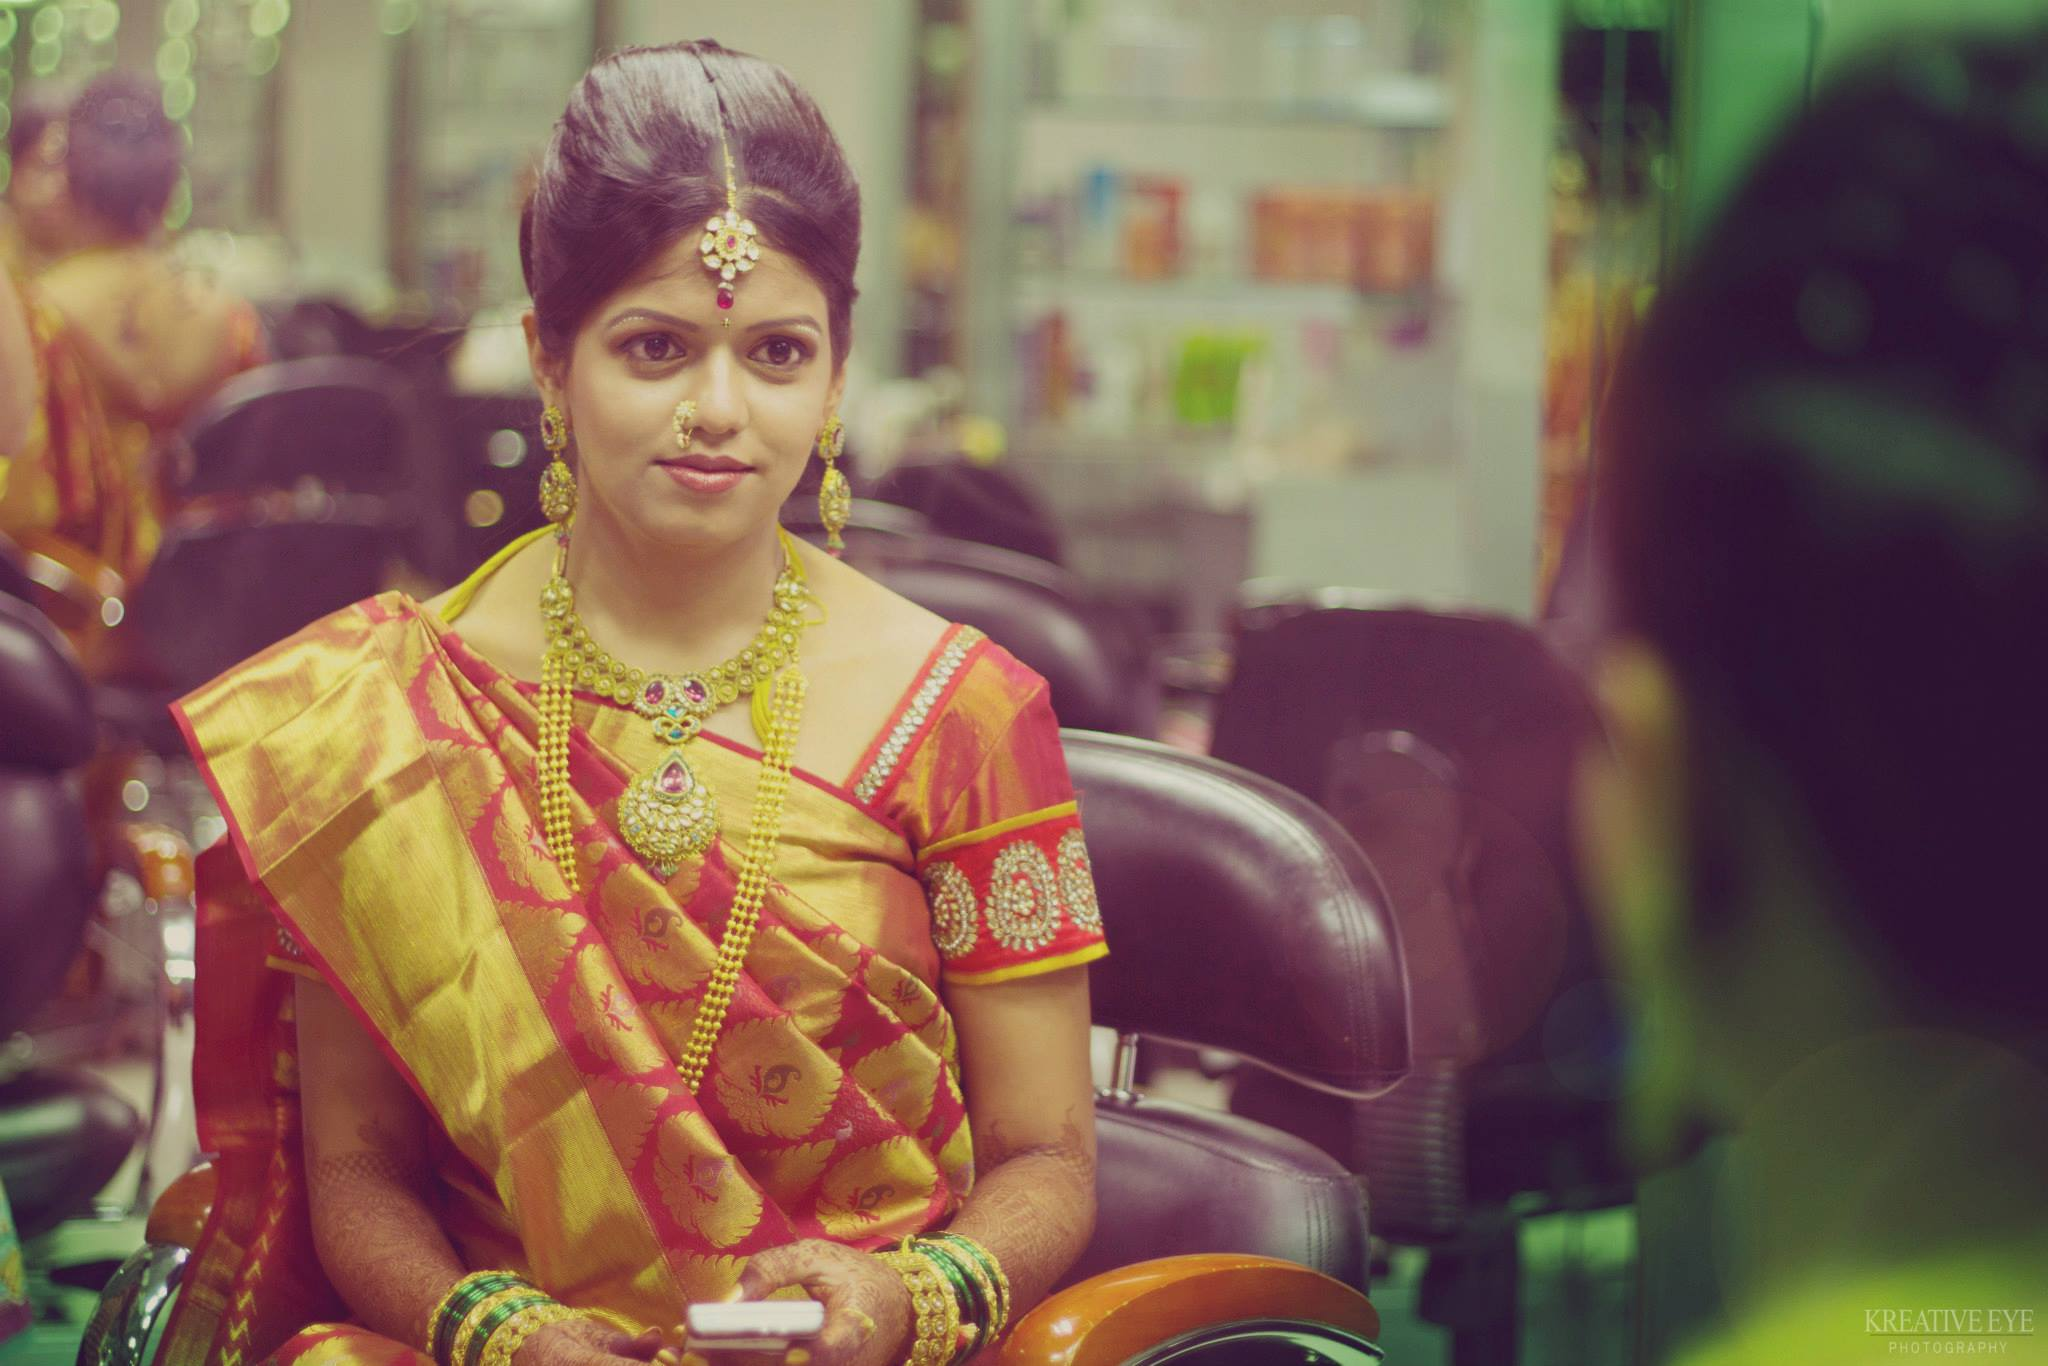 mixed emotions of a bride on the 'D' day